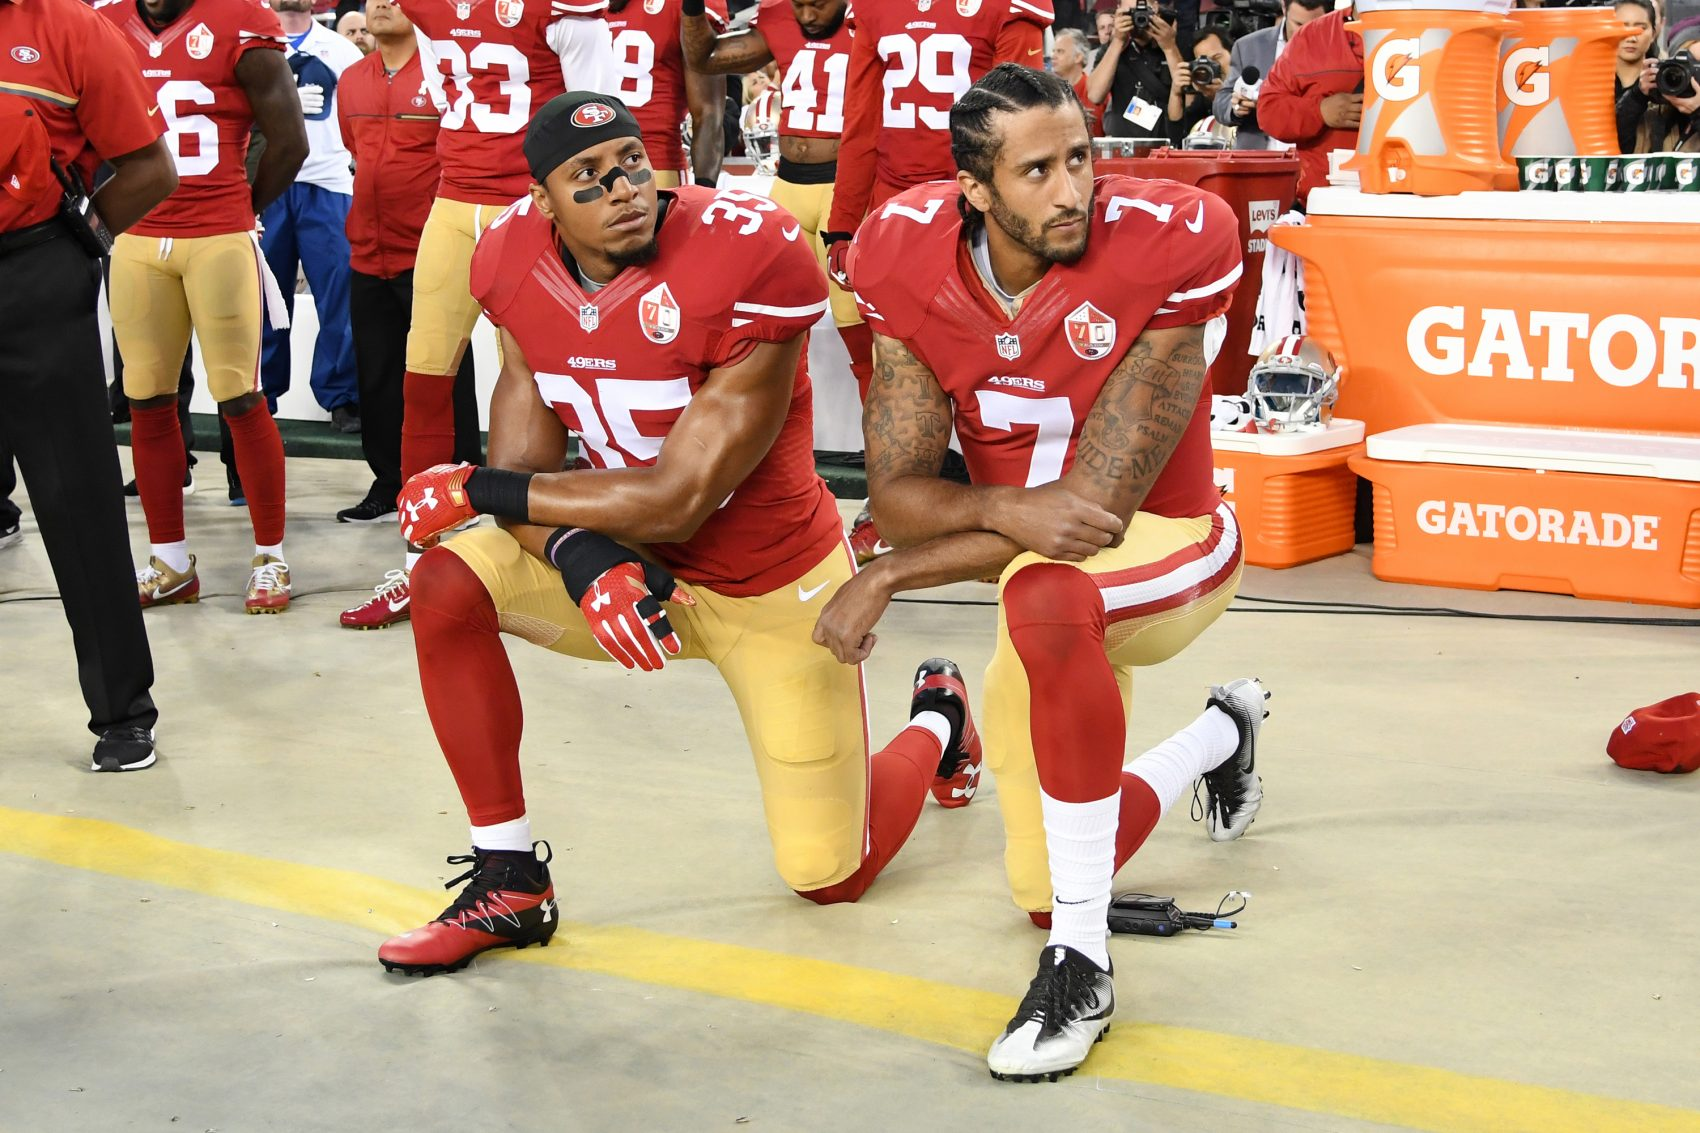 """""""But then a big change happened -- didn't seem like much, but by my estimation, changed everything. Instead of sitting, Kaepernick kneeled."""" (Thearon W. Henderson/Getty Images)"""